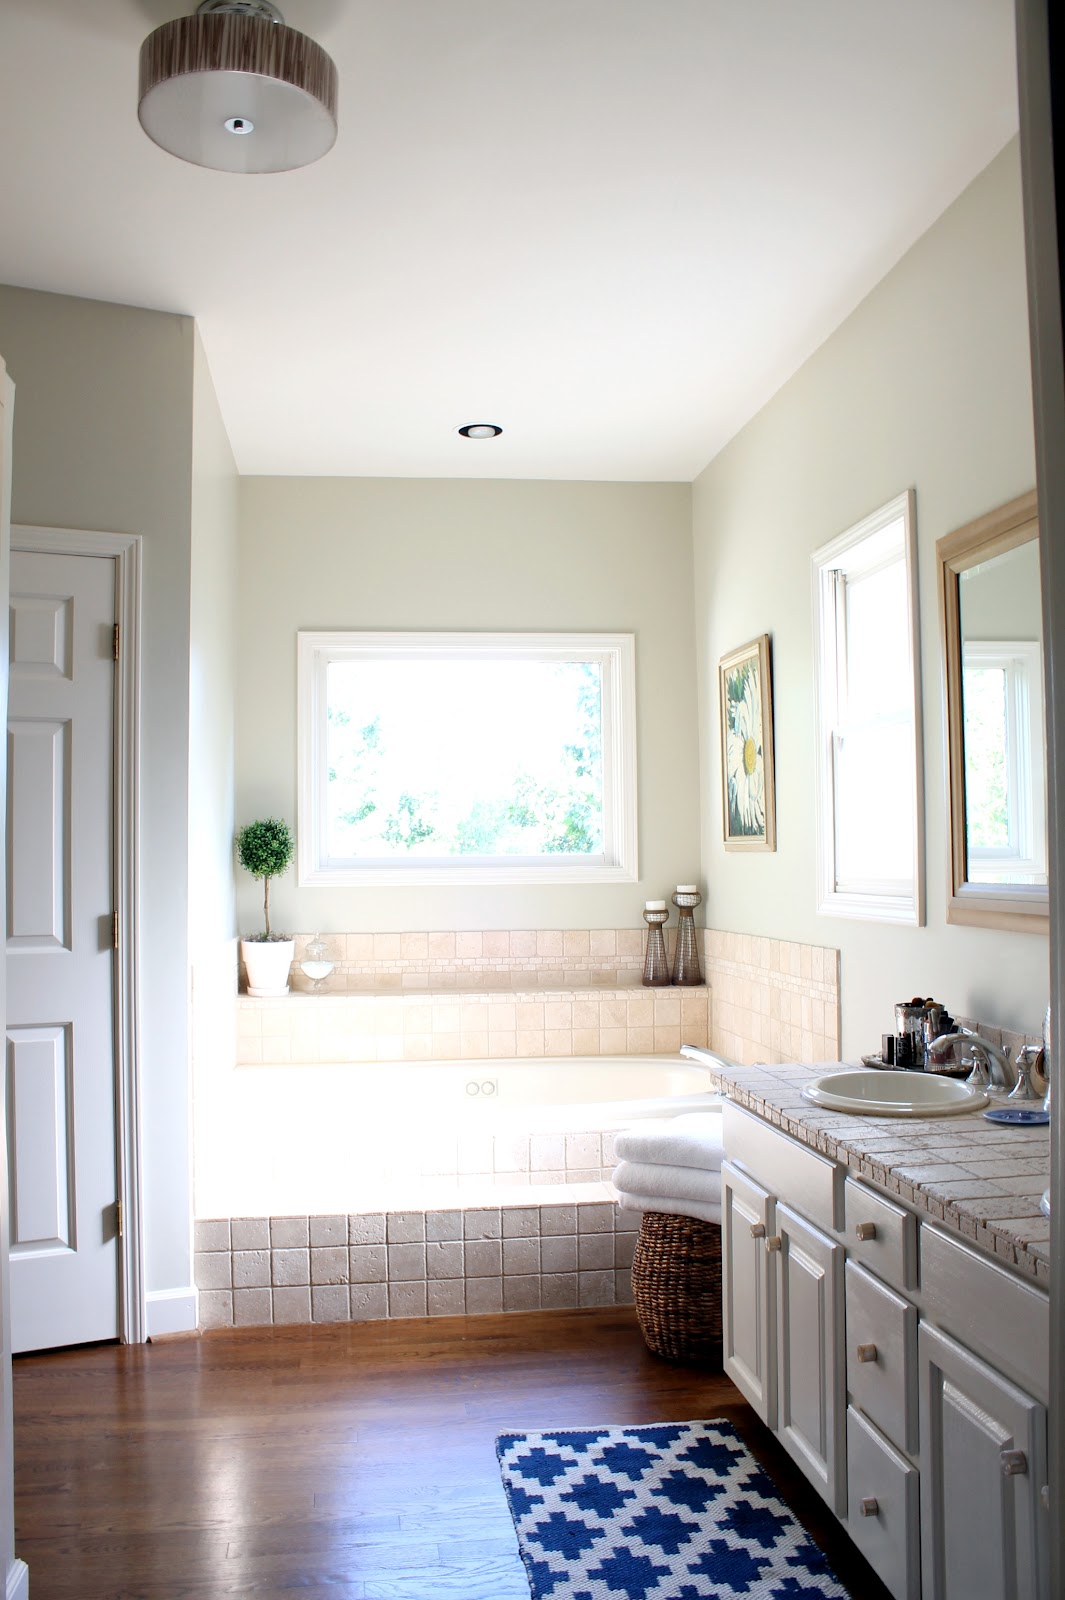 The Big Master Bathroom Debate - Our Fifth House